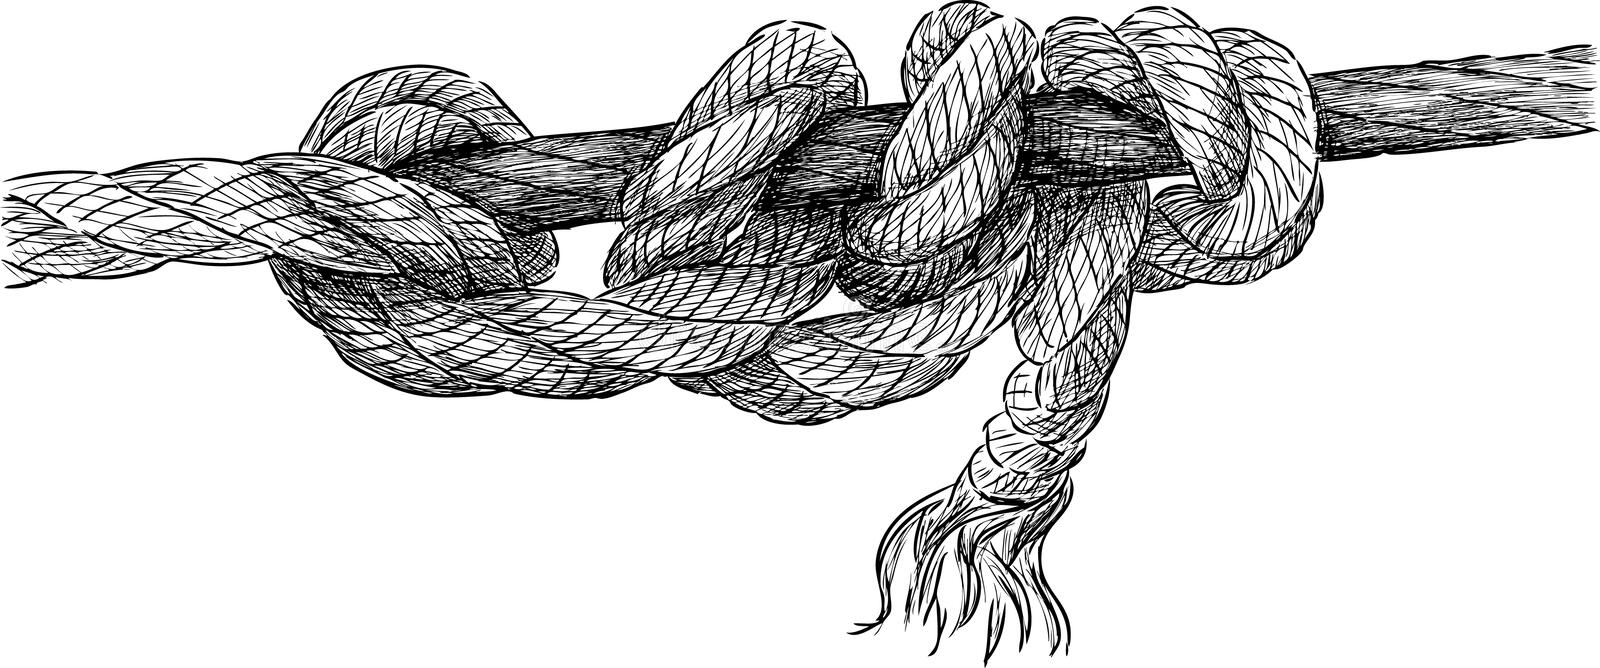 Twisted rope vector illustration